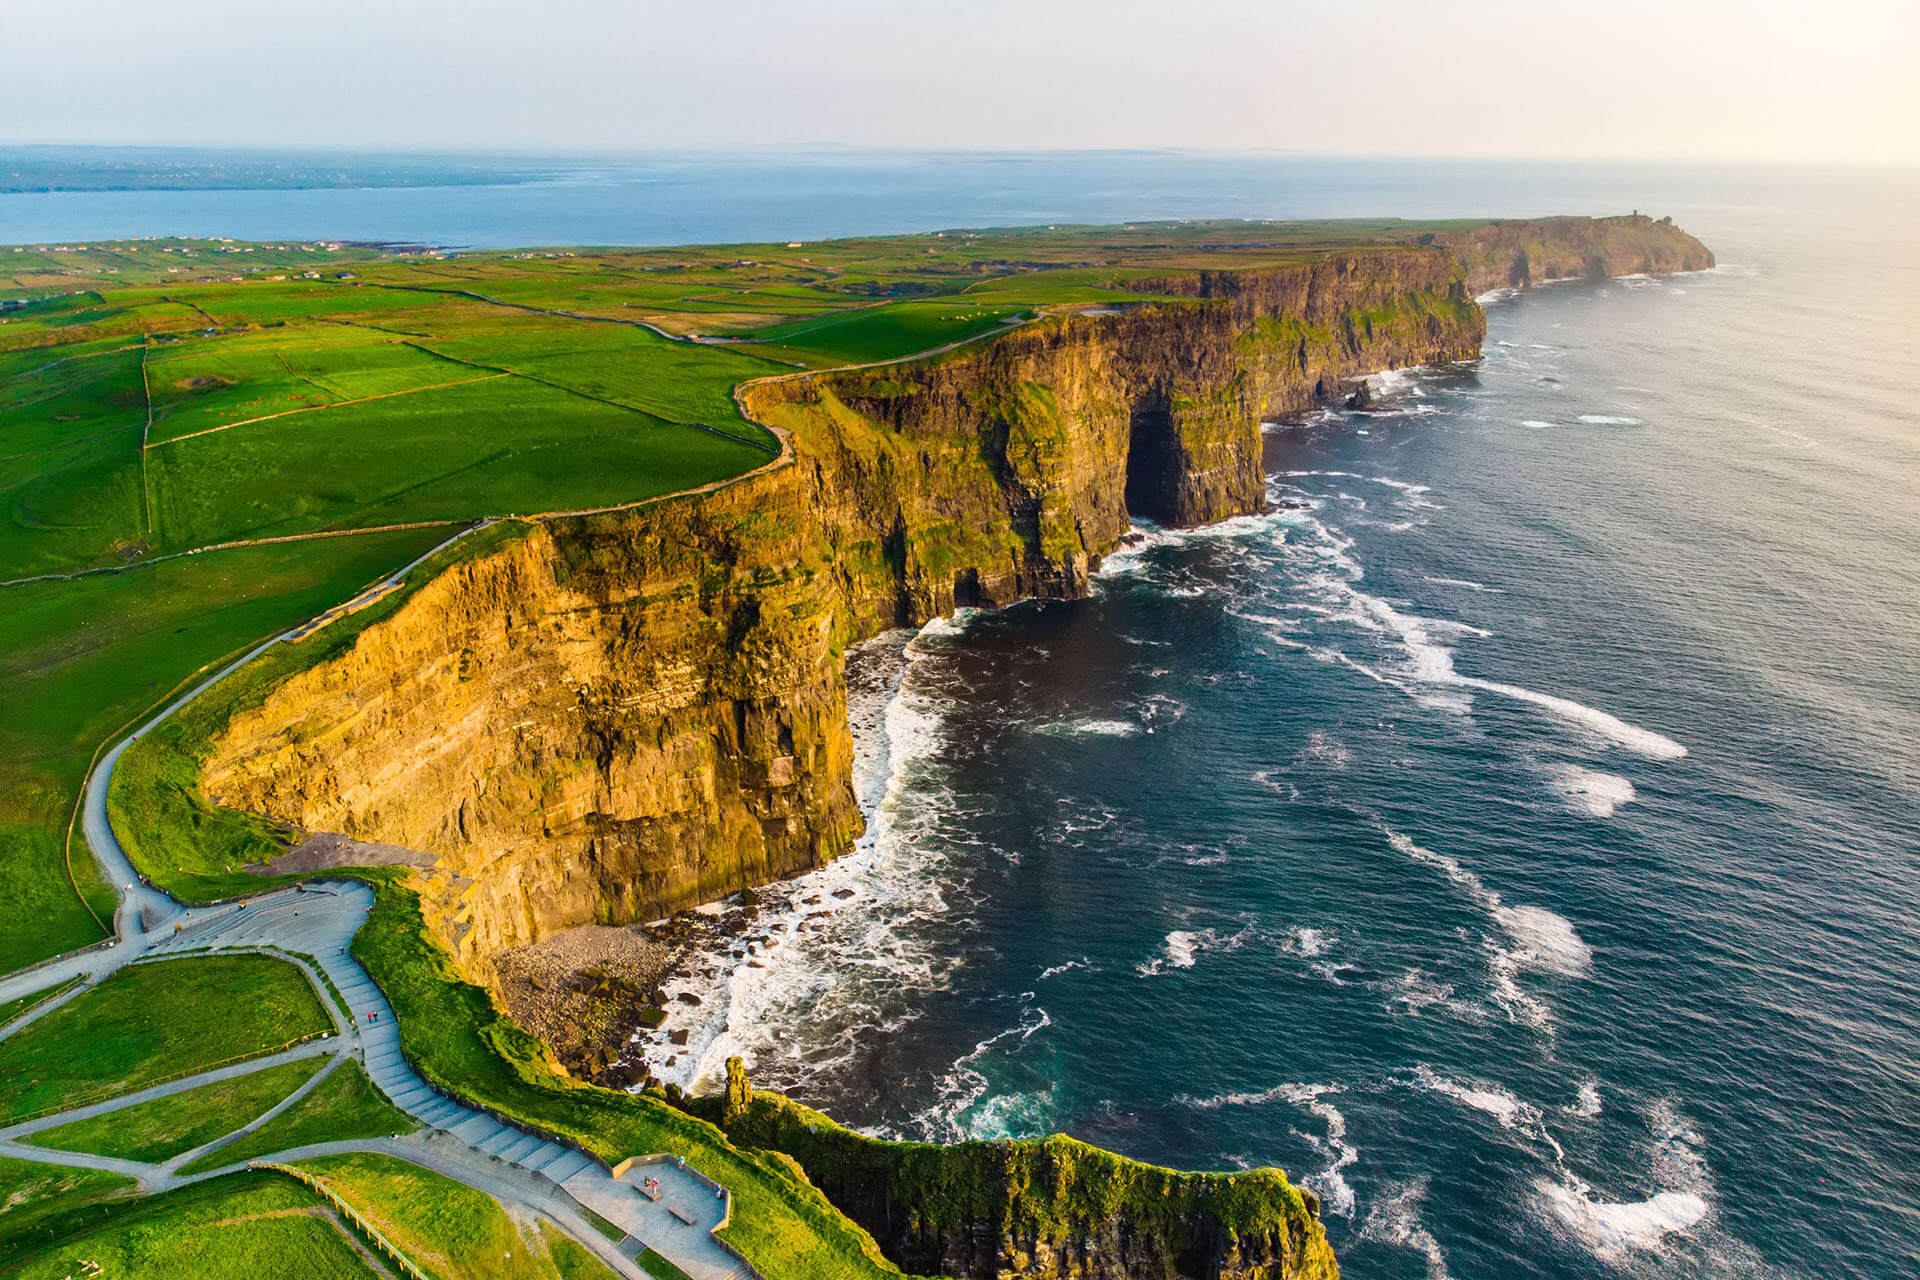 Ireland: Consulate Visa Processing Resumed for Some Business Purposes